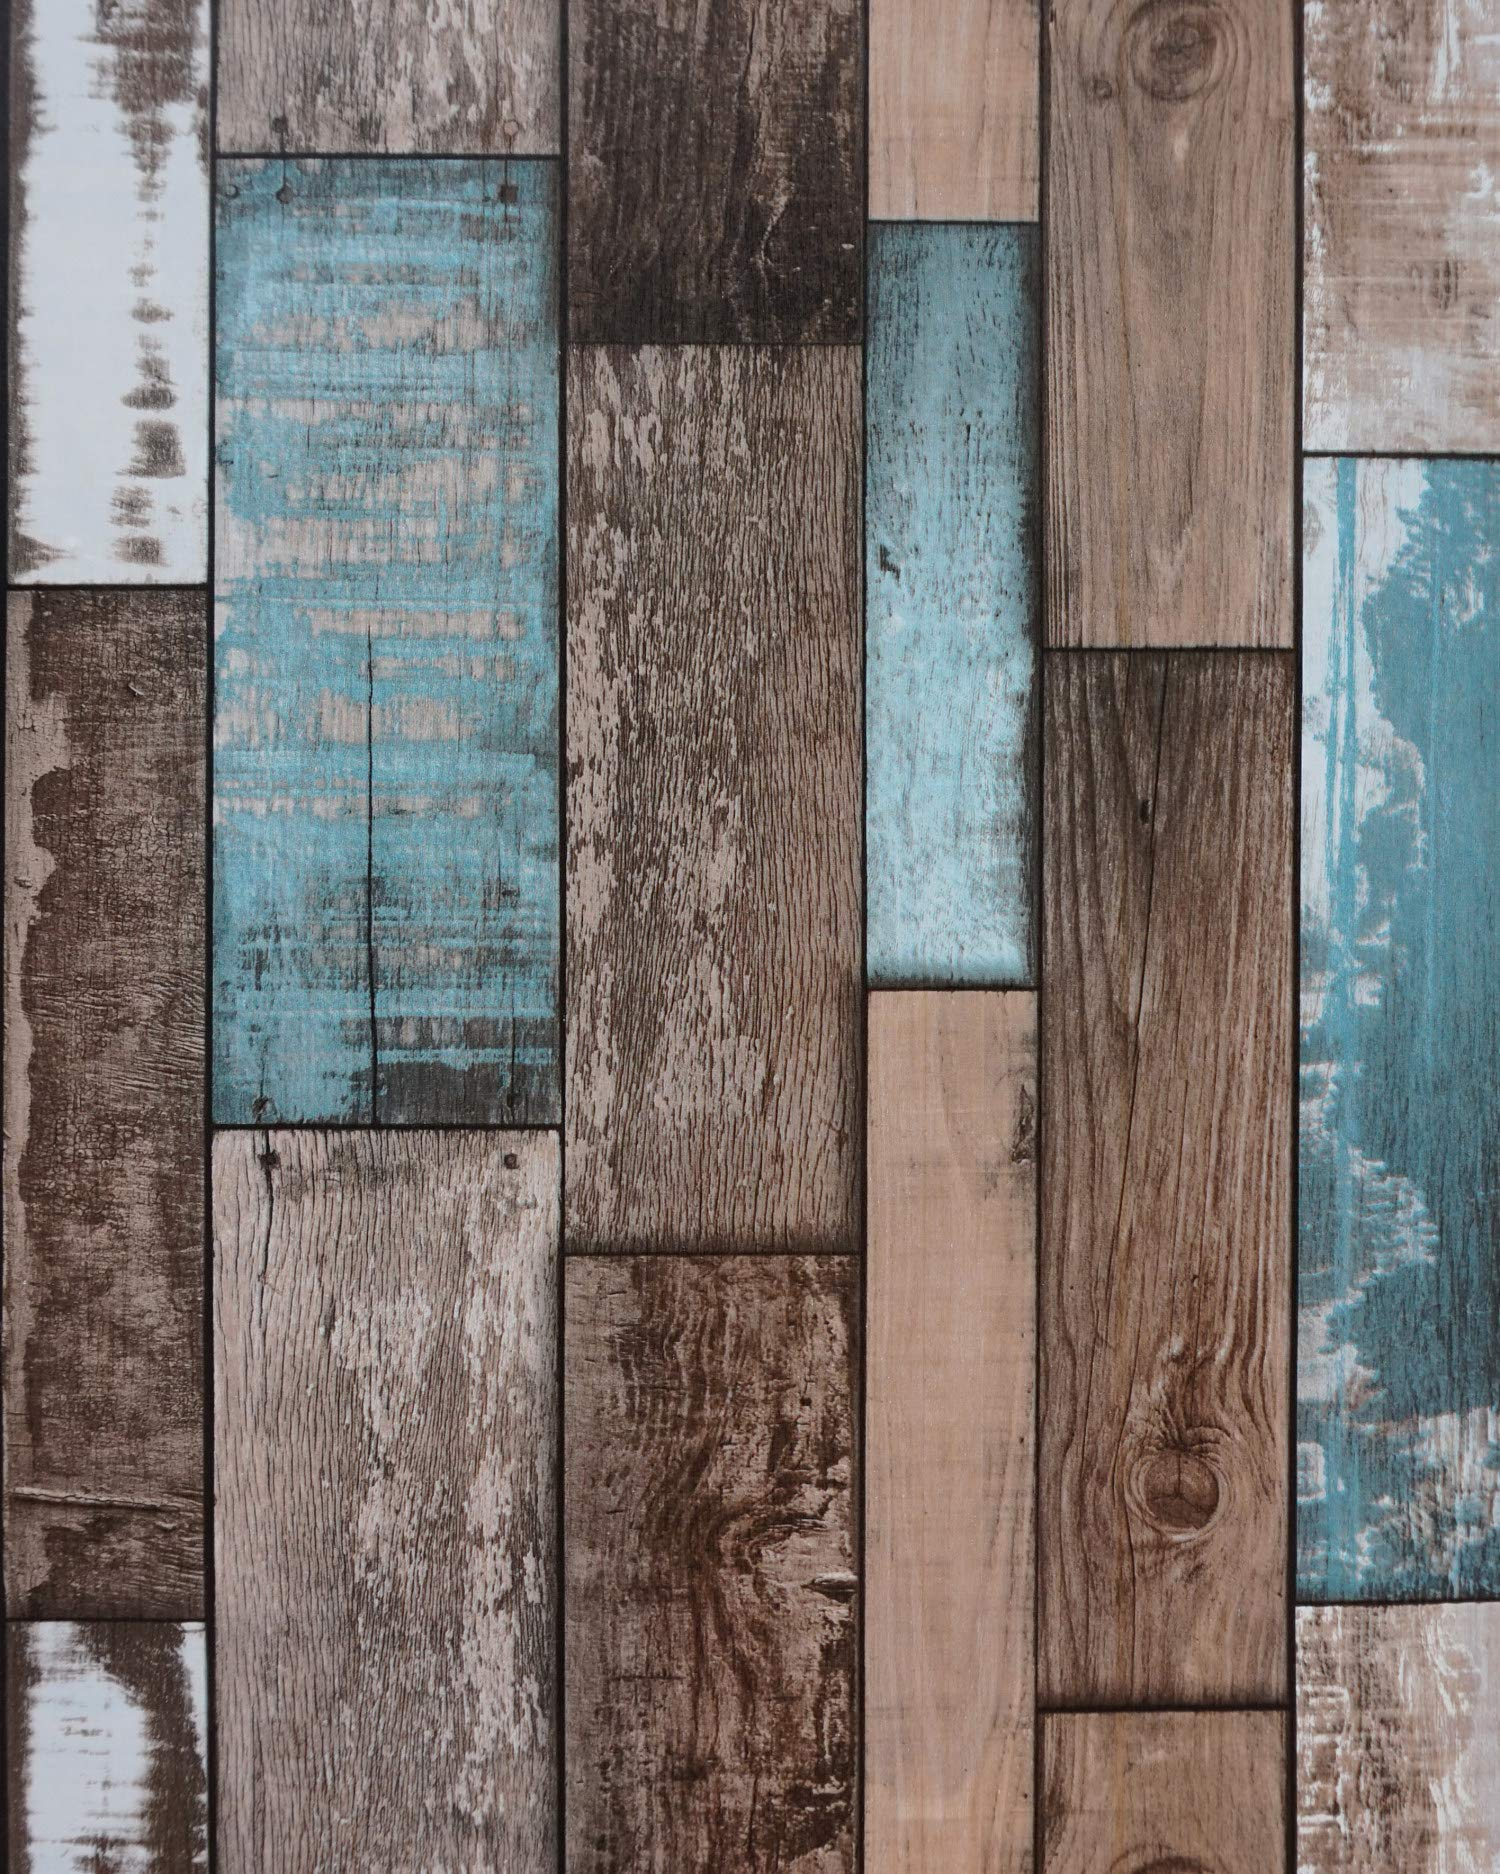 16.4Ft Wood Plank Wallpaper Wood Wallpaper Stick and Peel Wood Contact Paper Self Adhesive Wallpaper Removable Wallpaper Wood Look Wallpaper Rustic Vintage Reclaimed Distressed Wood Wallpaper Roll 3D by Heroad